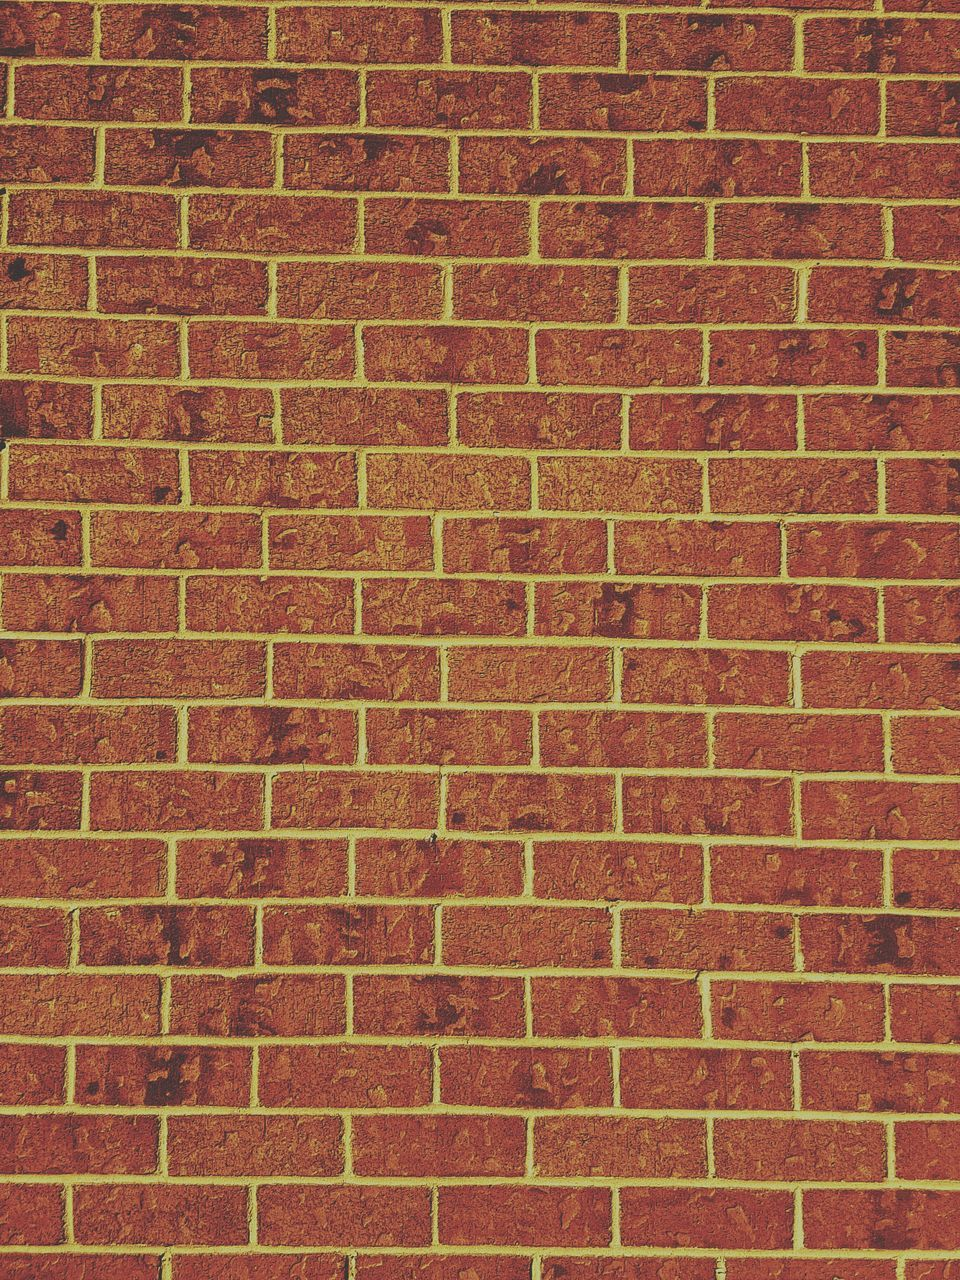 brick wall, backgrounds, full frame, textured, brick, pattern, red, architecture, brown, day, no people, outdoors, close-up